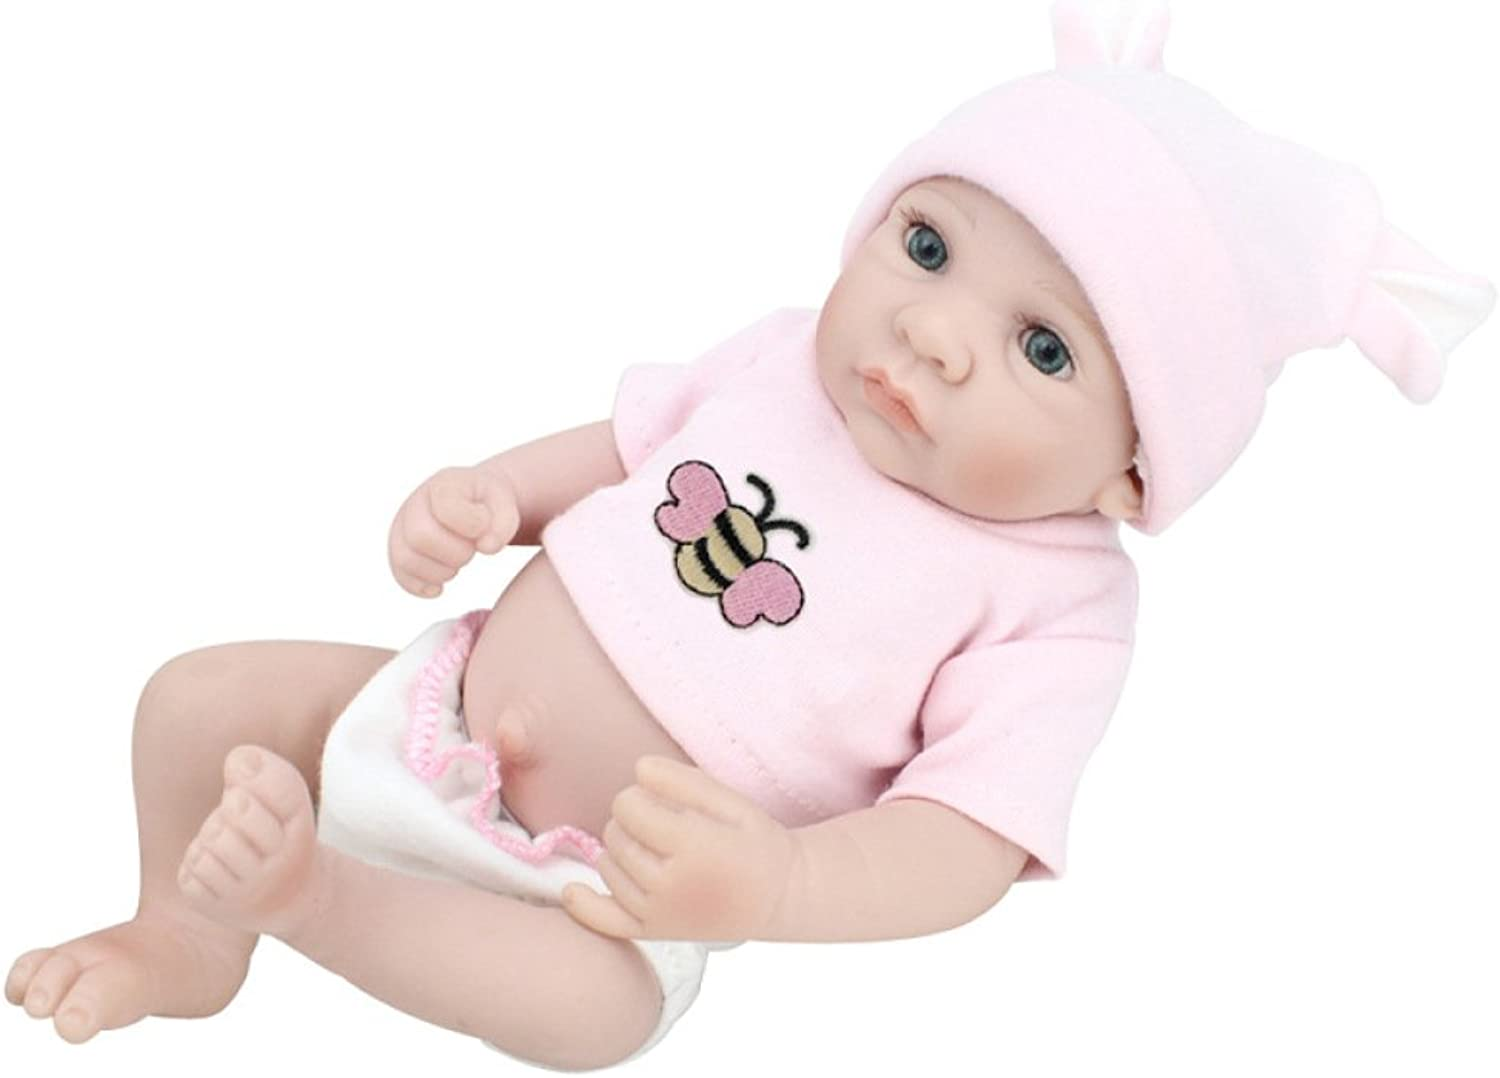 Silicone Vinyl Reborn Baby Dolls Handmade Lifelike Realistic Baby Doll Soft Simulation 11 inch 28 cm Eyes Open Girl Favorite Gift Can Be Washed